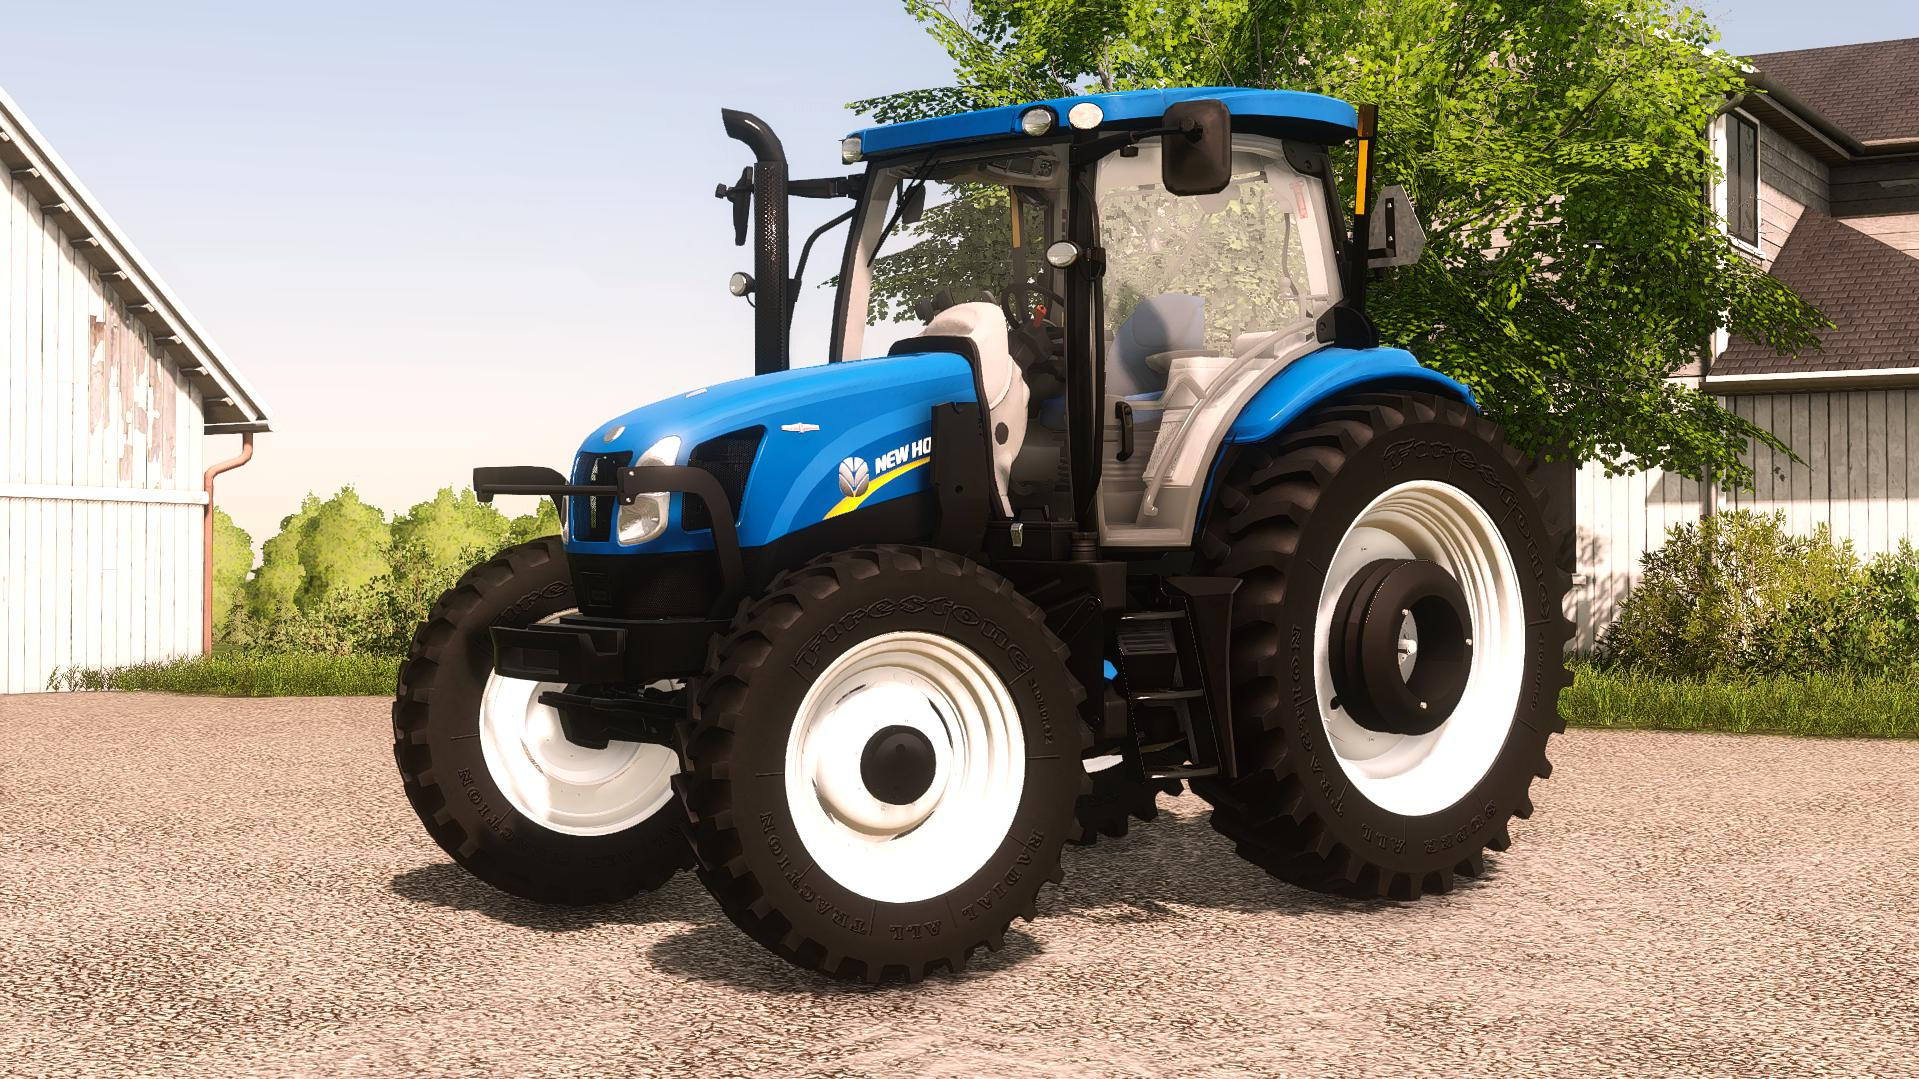 FS19 - New Holland T6 2012 Tractor V1.0